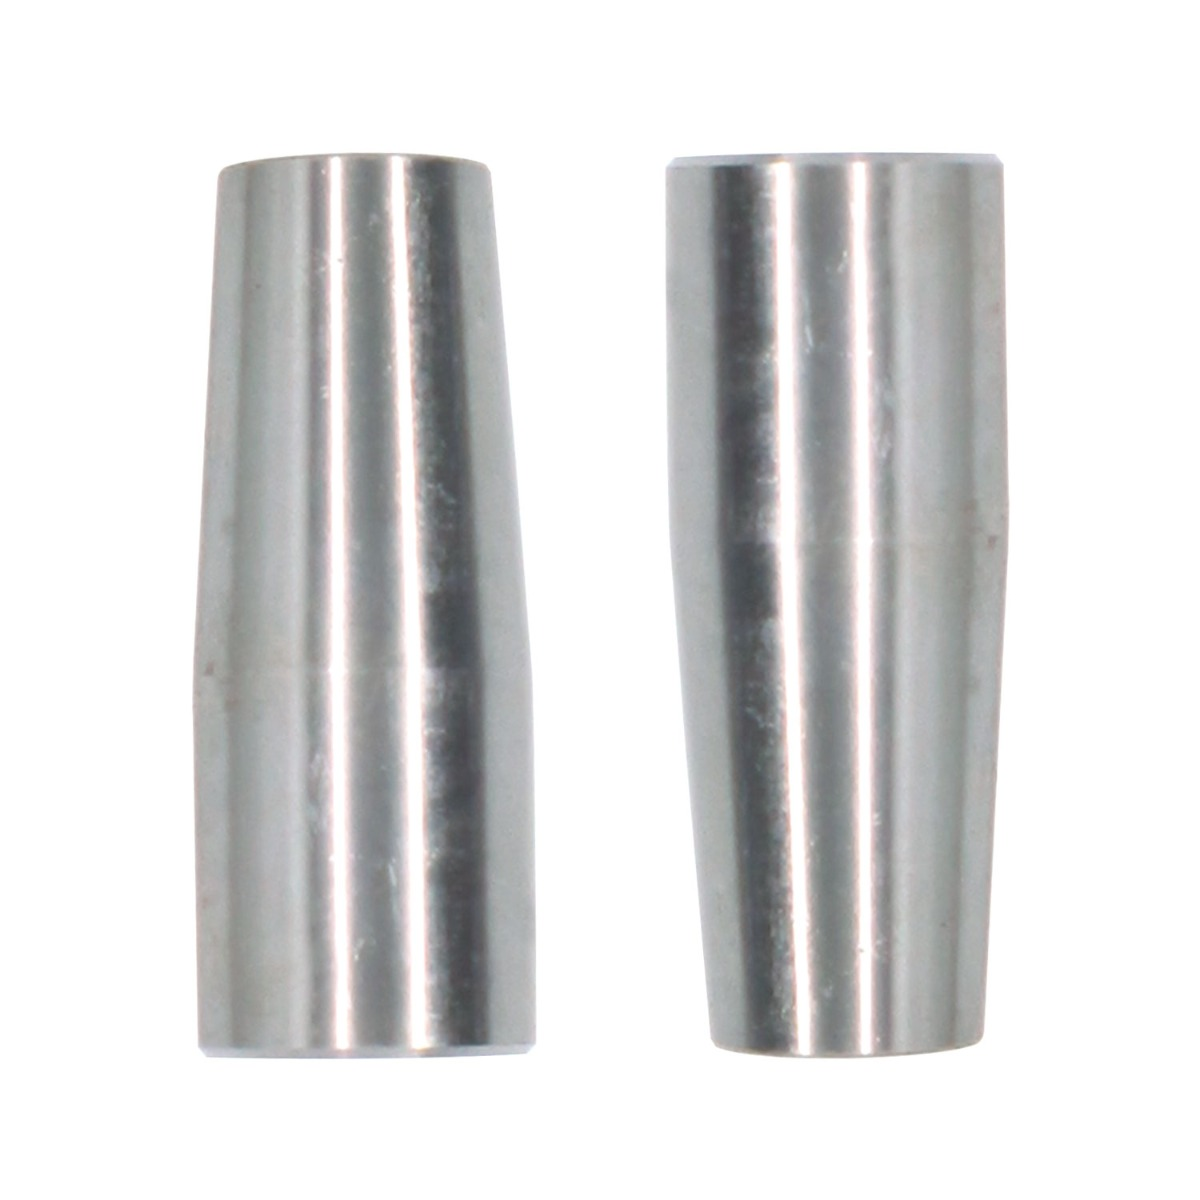 2PCS Pivot Pins A-6707180 Compatible With Bobcat Skid Steer Loader 753 763 773 853 7753 S130 S140 S175 S185 S205 T140 T190